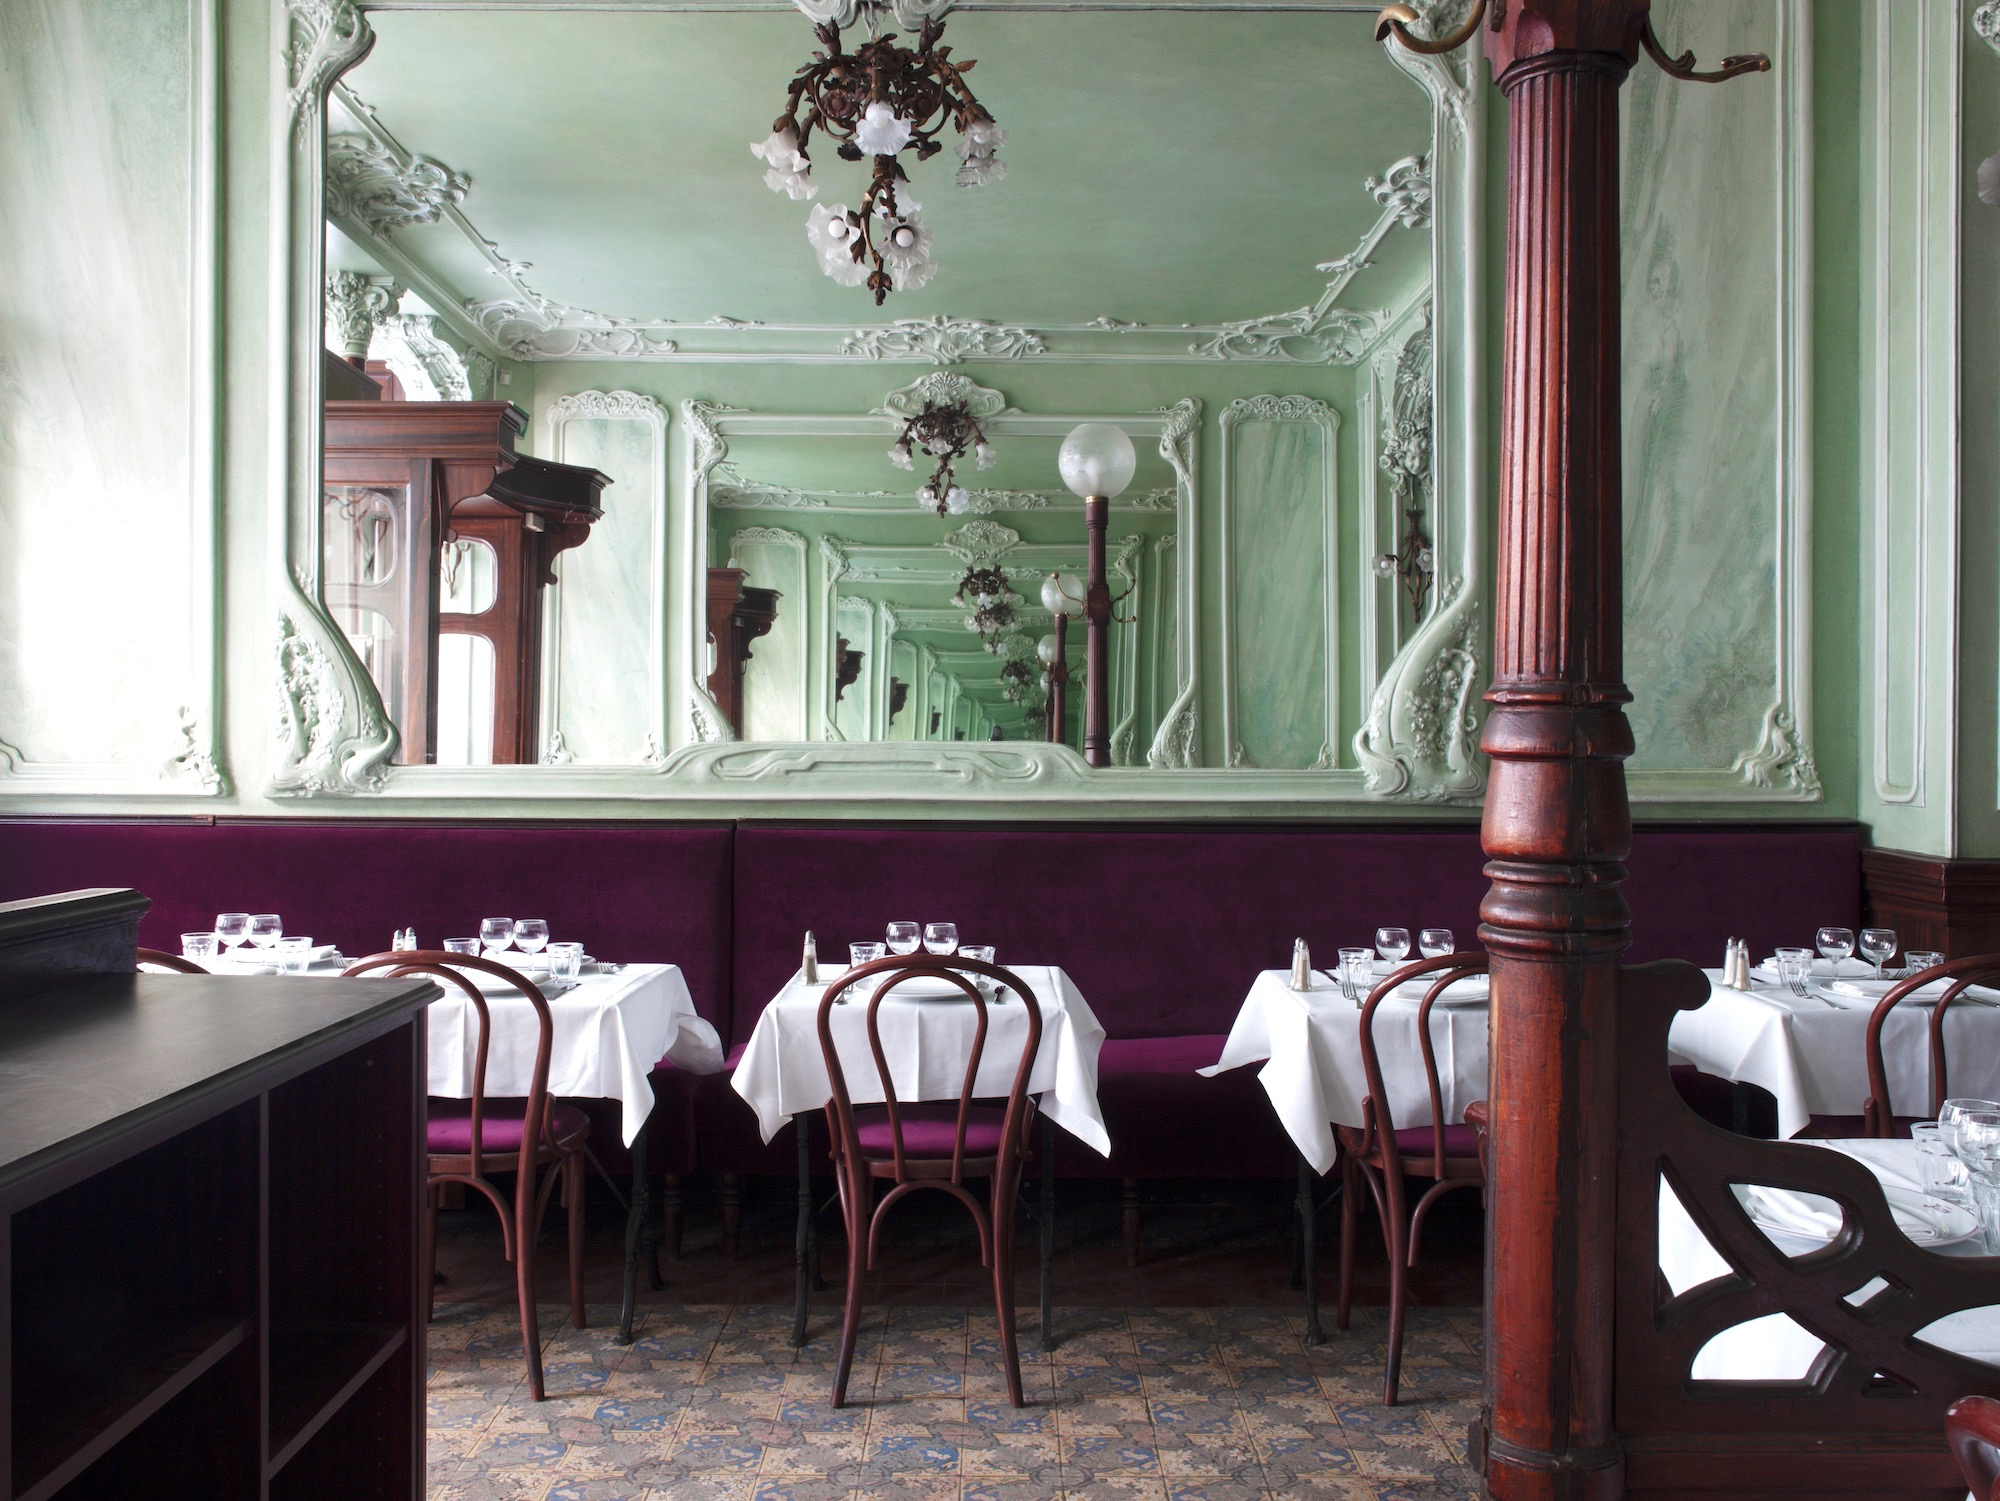 The art nouveau interior of Bouillon Julien restaurant in Paris. Pale green walls with a large mirror in the middle, chandeliers, maroon bench seat and chairs with tables with white table cloths and wine glasses.